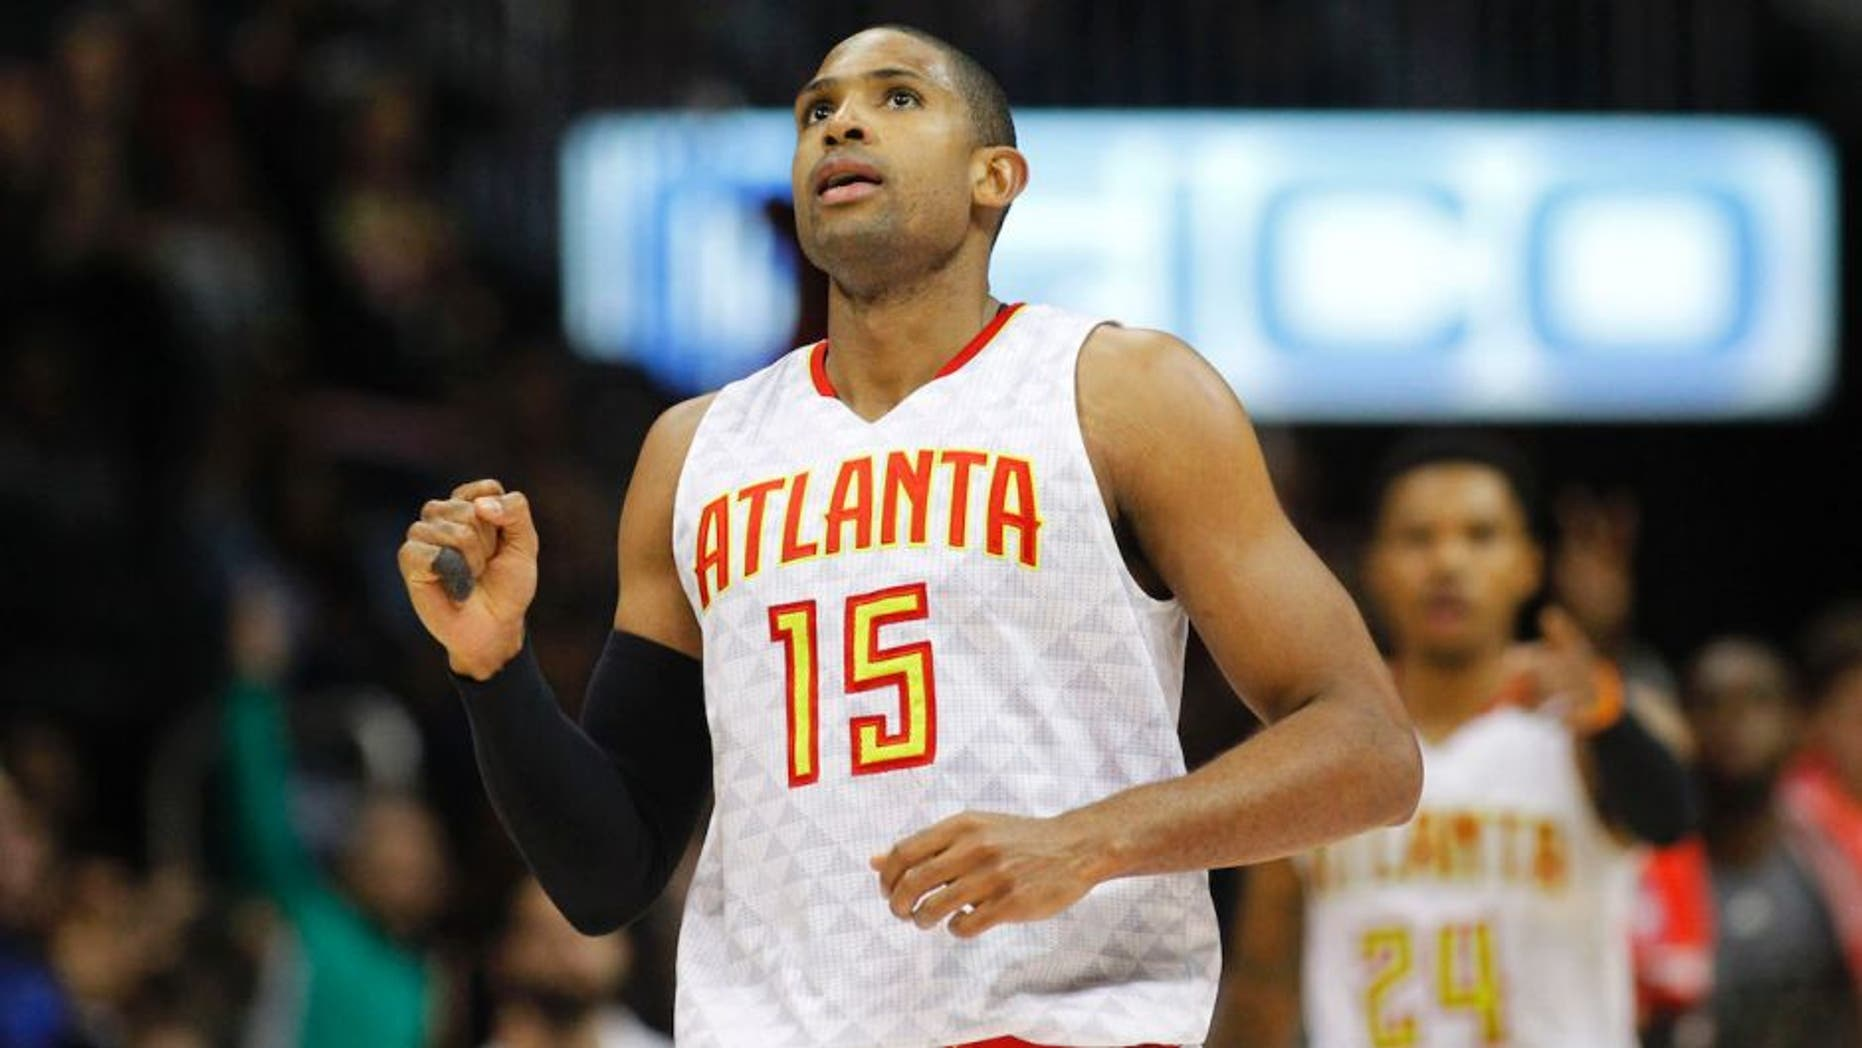 Feb 5, 2016; Atlanta, GA, USA; Atlanta Hawks center Al Horford (15) shows emotion after a made shot against the Indiana Pacers in the fourth quarter at Philips Arena. The Hawks defeated the Pacers 102-96. Mandatory Credit: Brett Davis-USA TODAY Sports